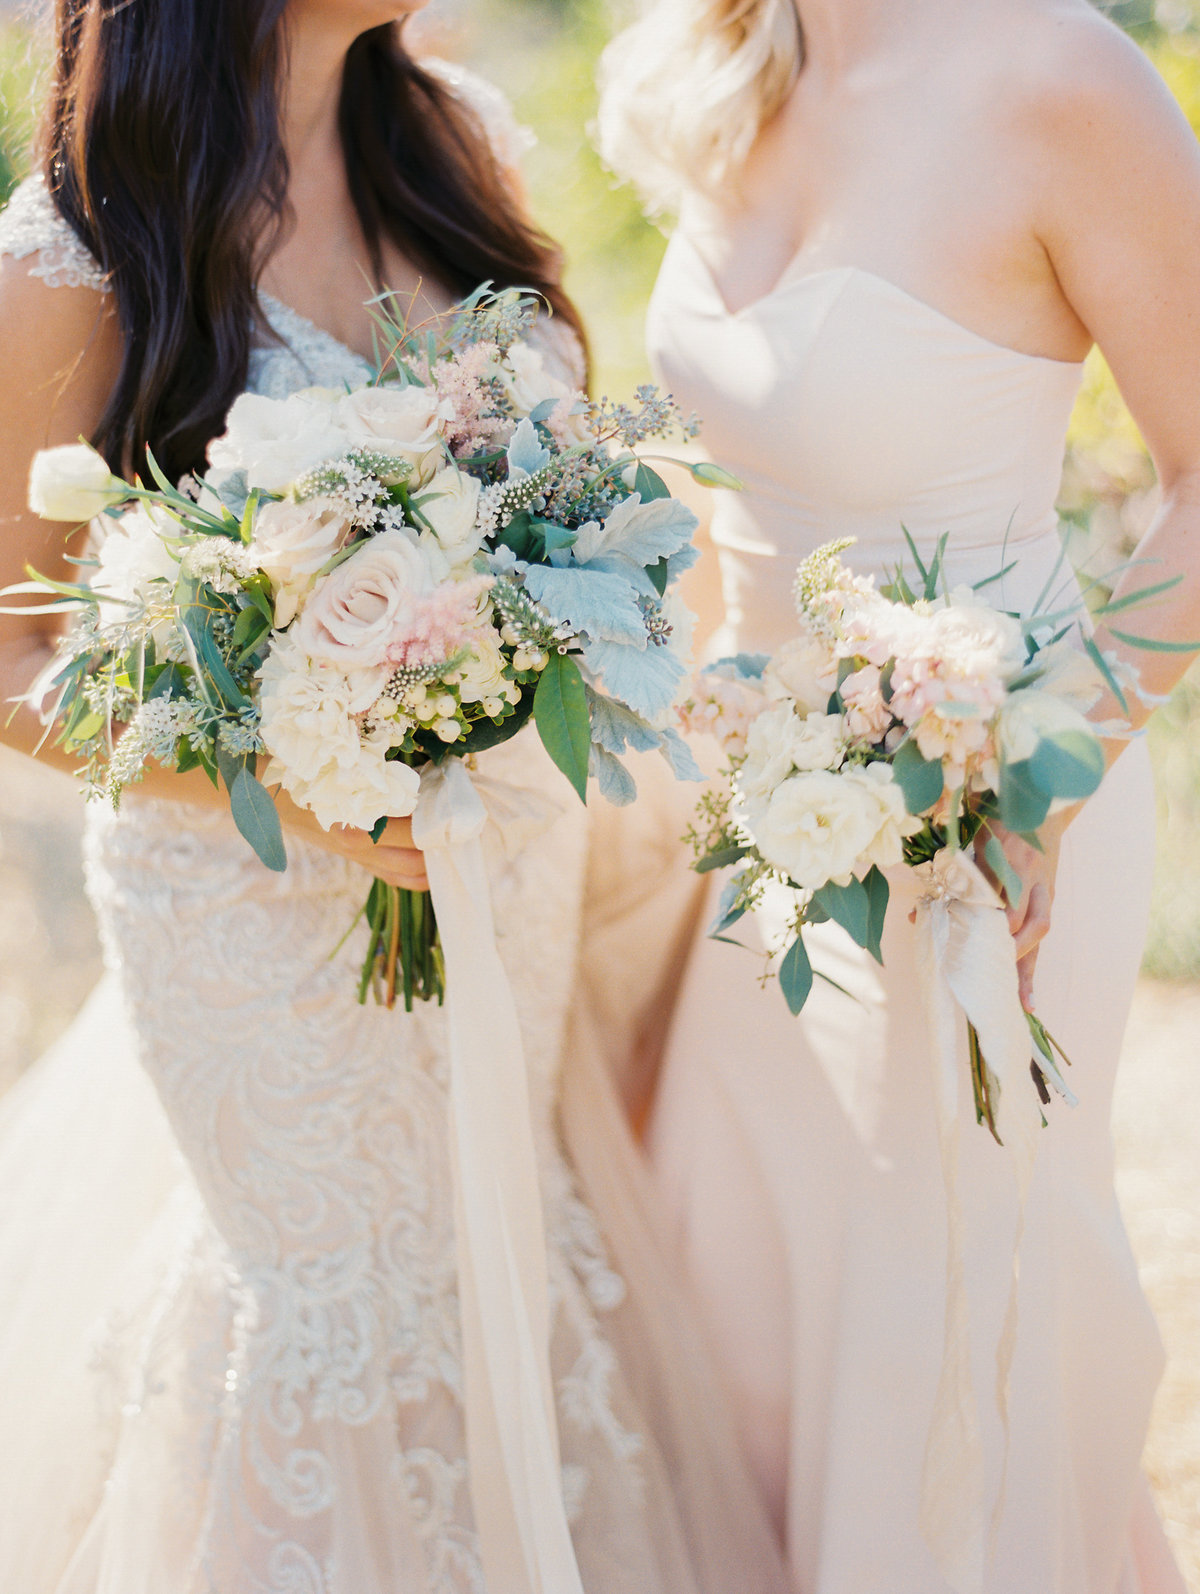 Natalie Bray Studios, Natalie Bray Photography, Southern California Wedding Photographer, Fine Art wedding, Destination Wedding Photographer, Sonoma Wedding Photographer-20